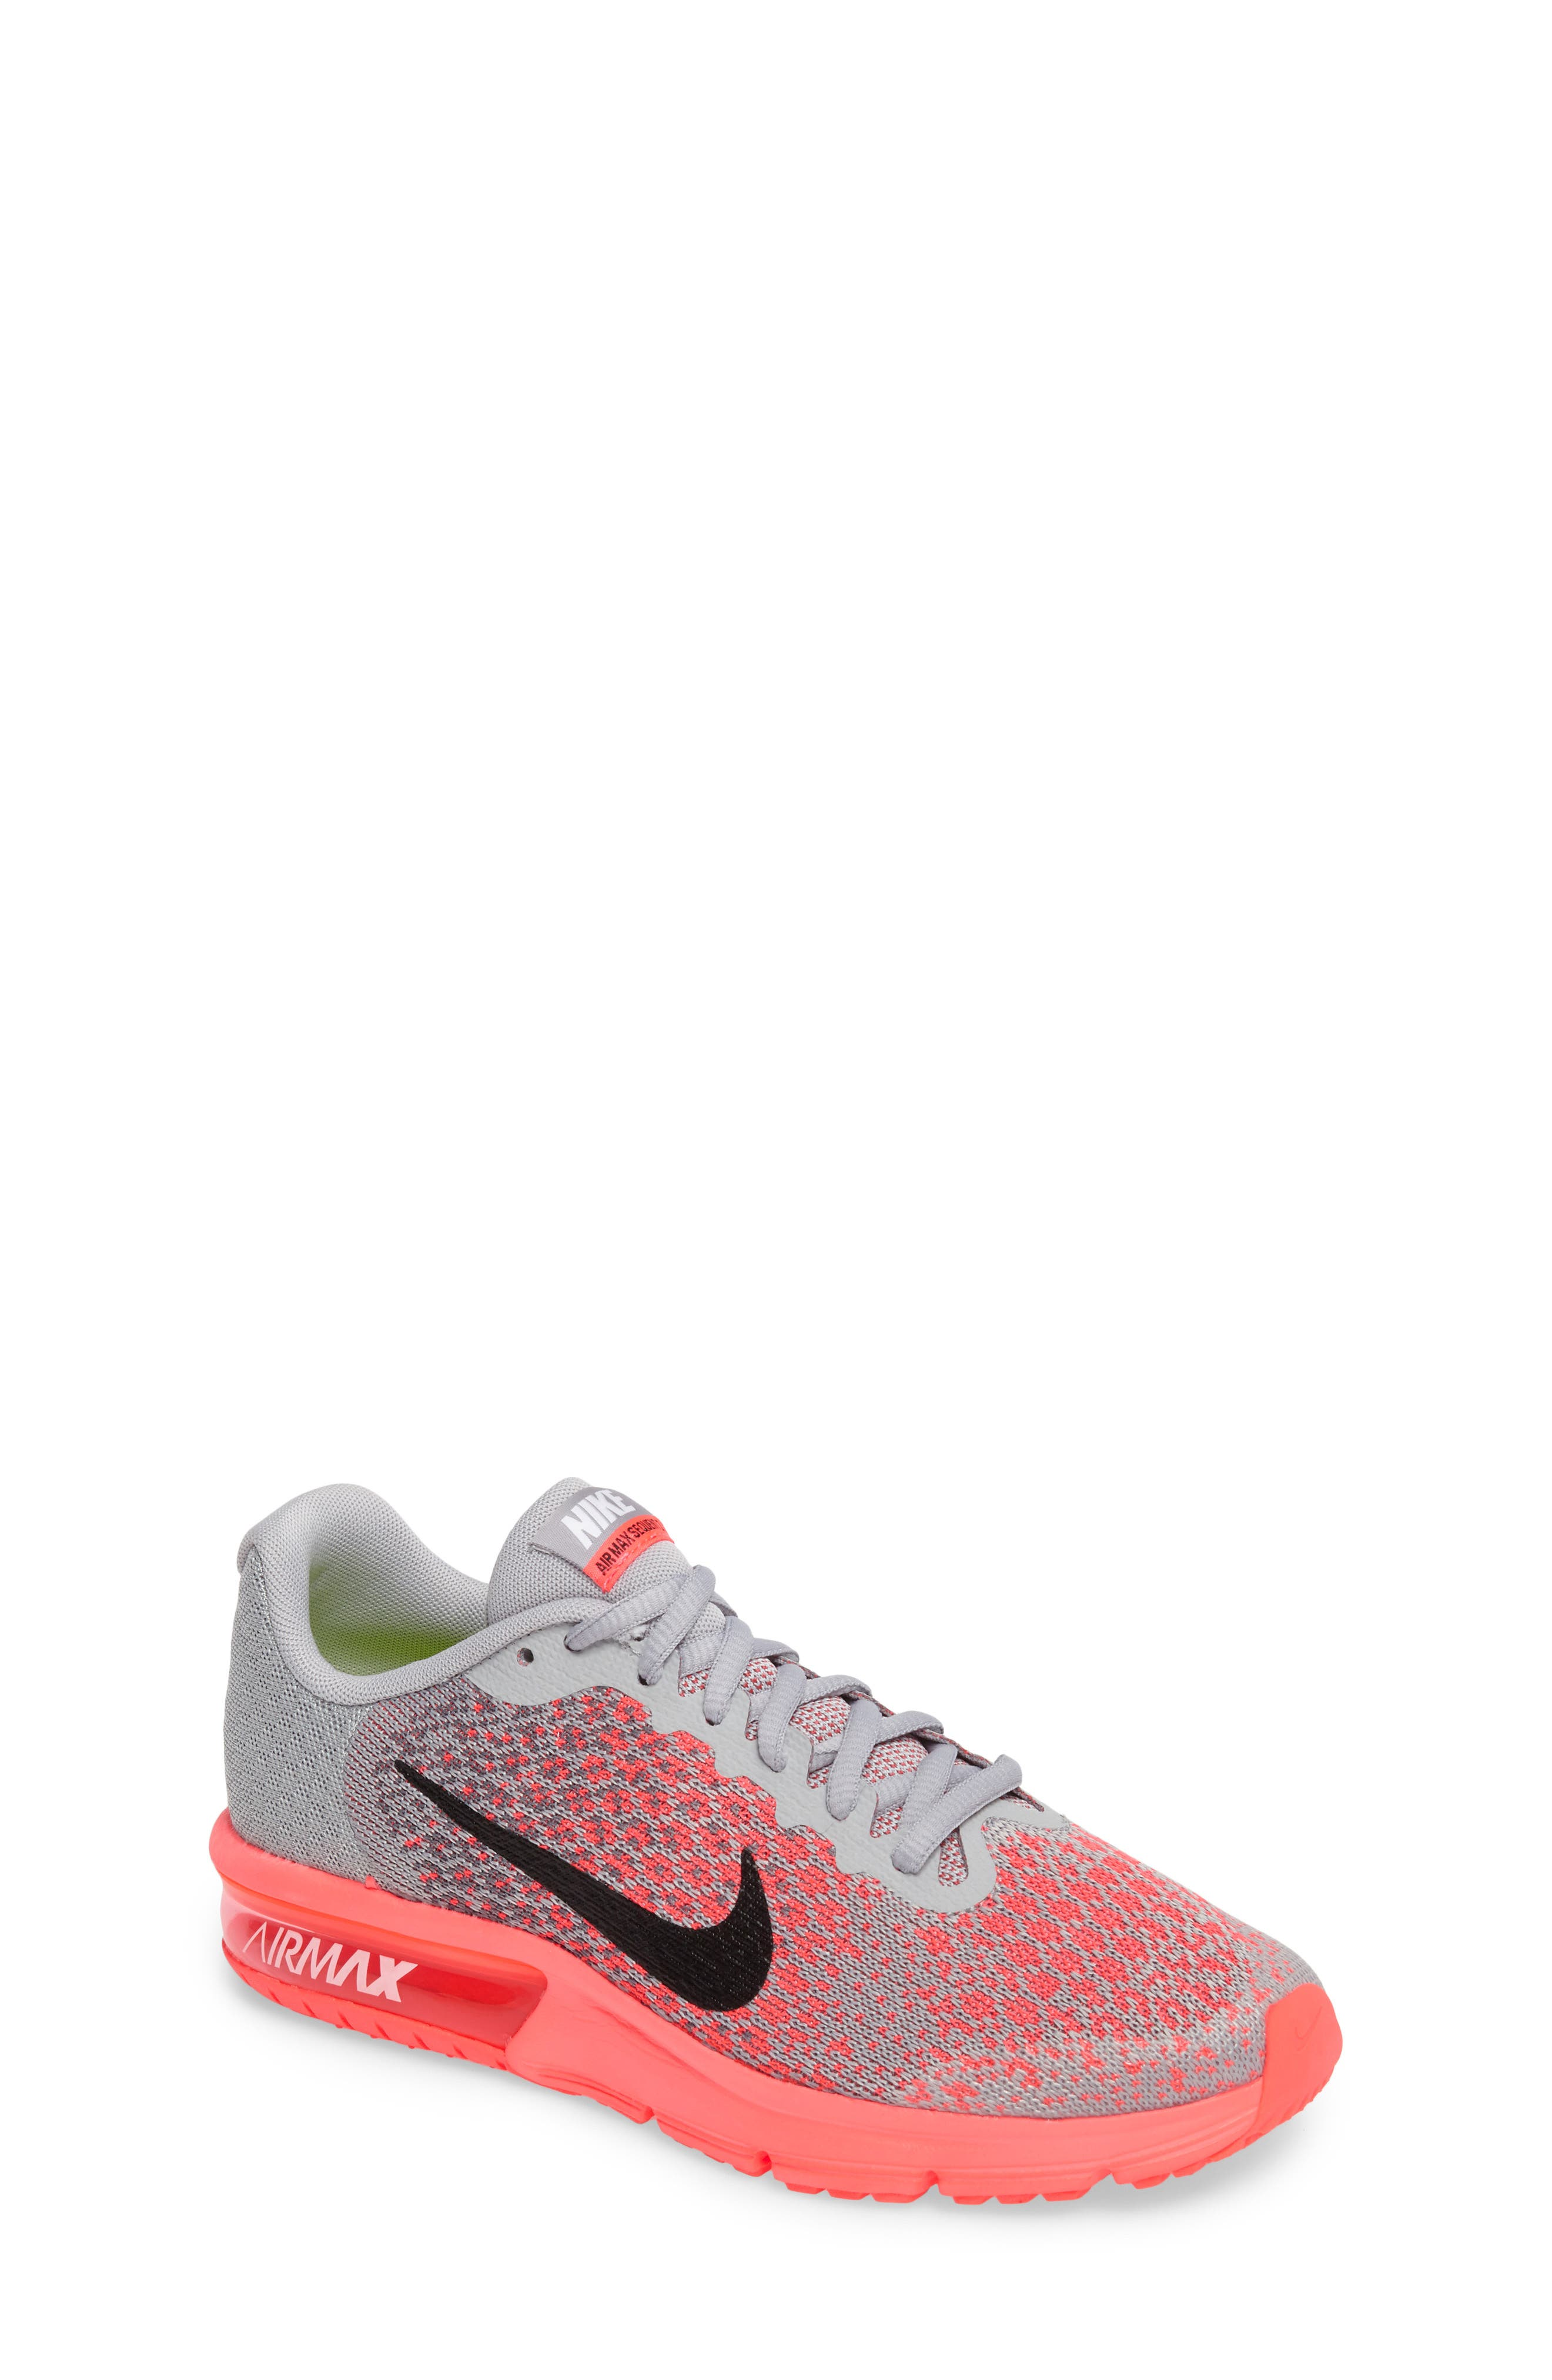 Nike Air Max Sequent 2 Sneaker (Big Kid)